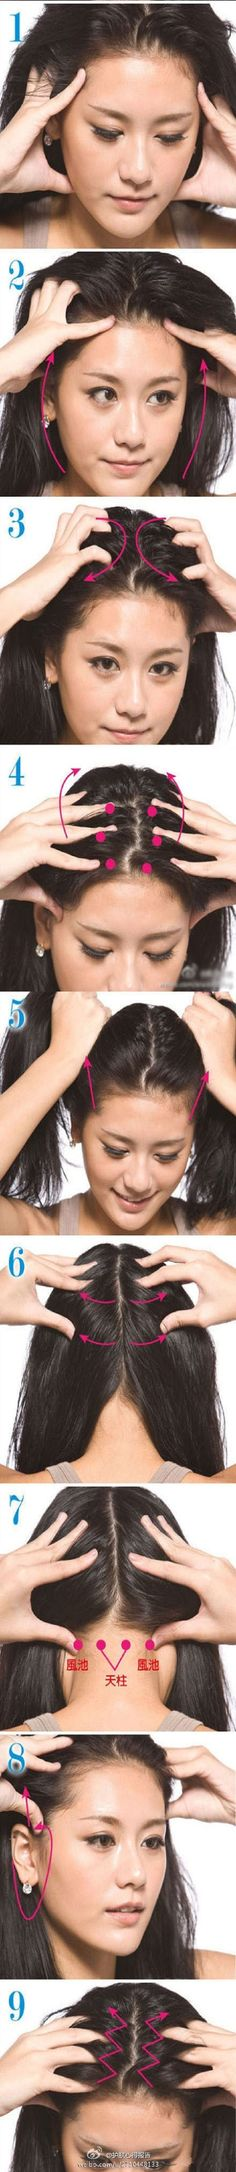 Massage Scalp To Stimulate Hair Growth  10 Leading Tips and DIYs to Grow Your H